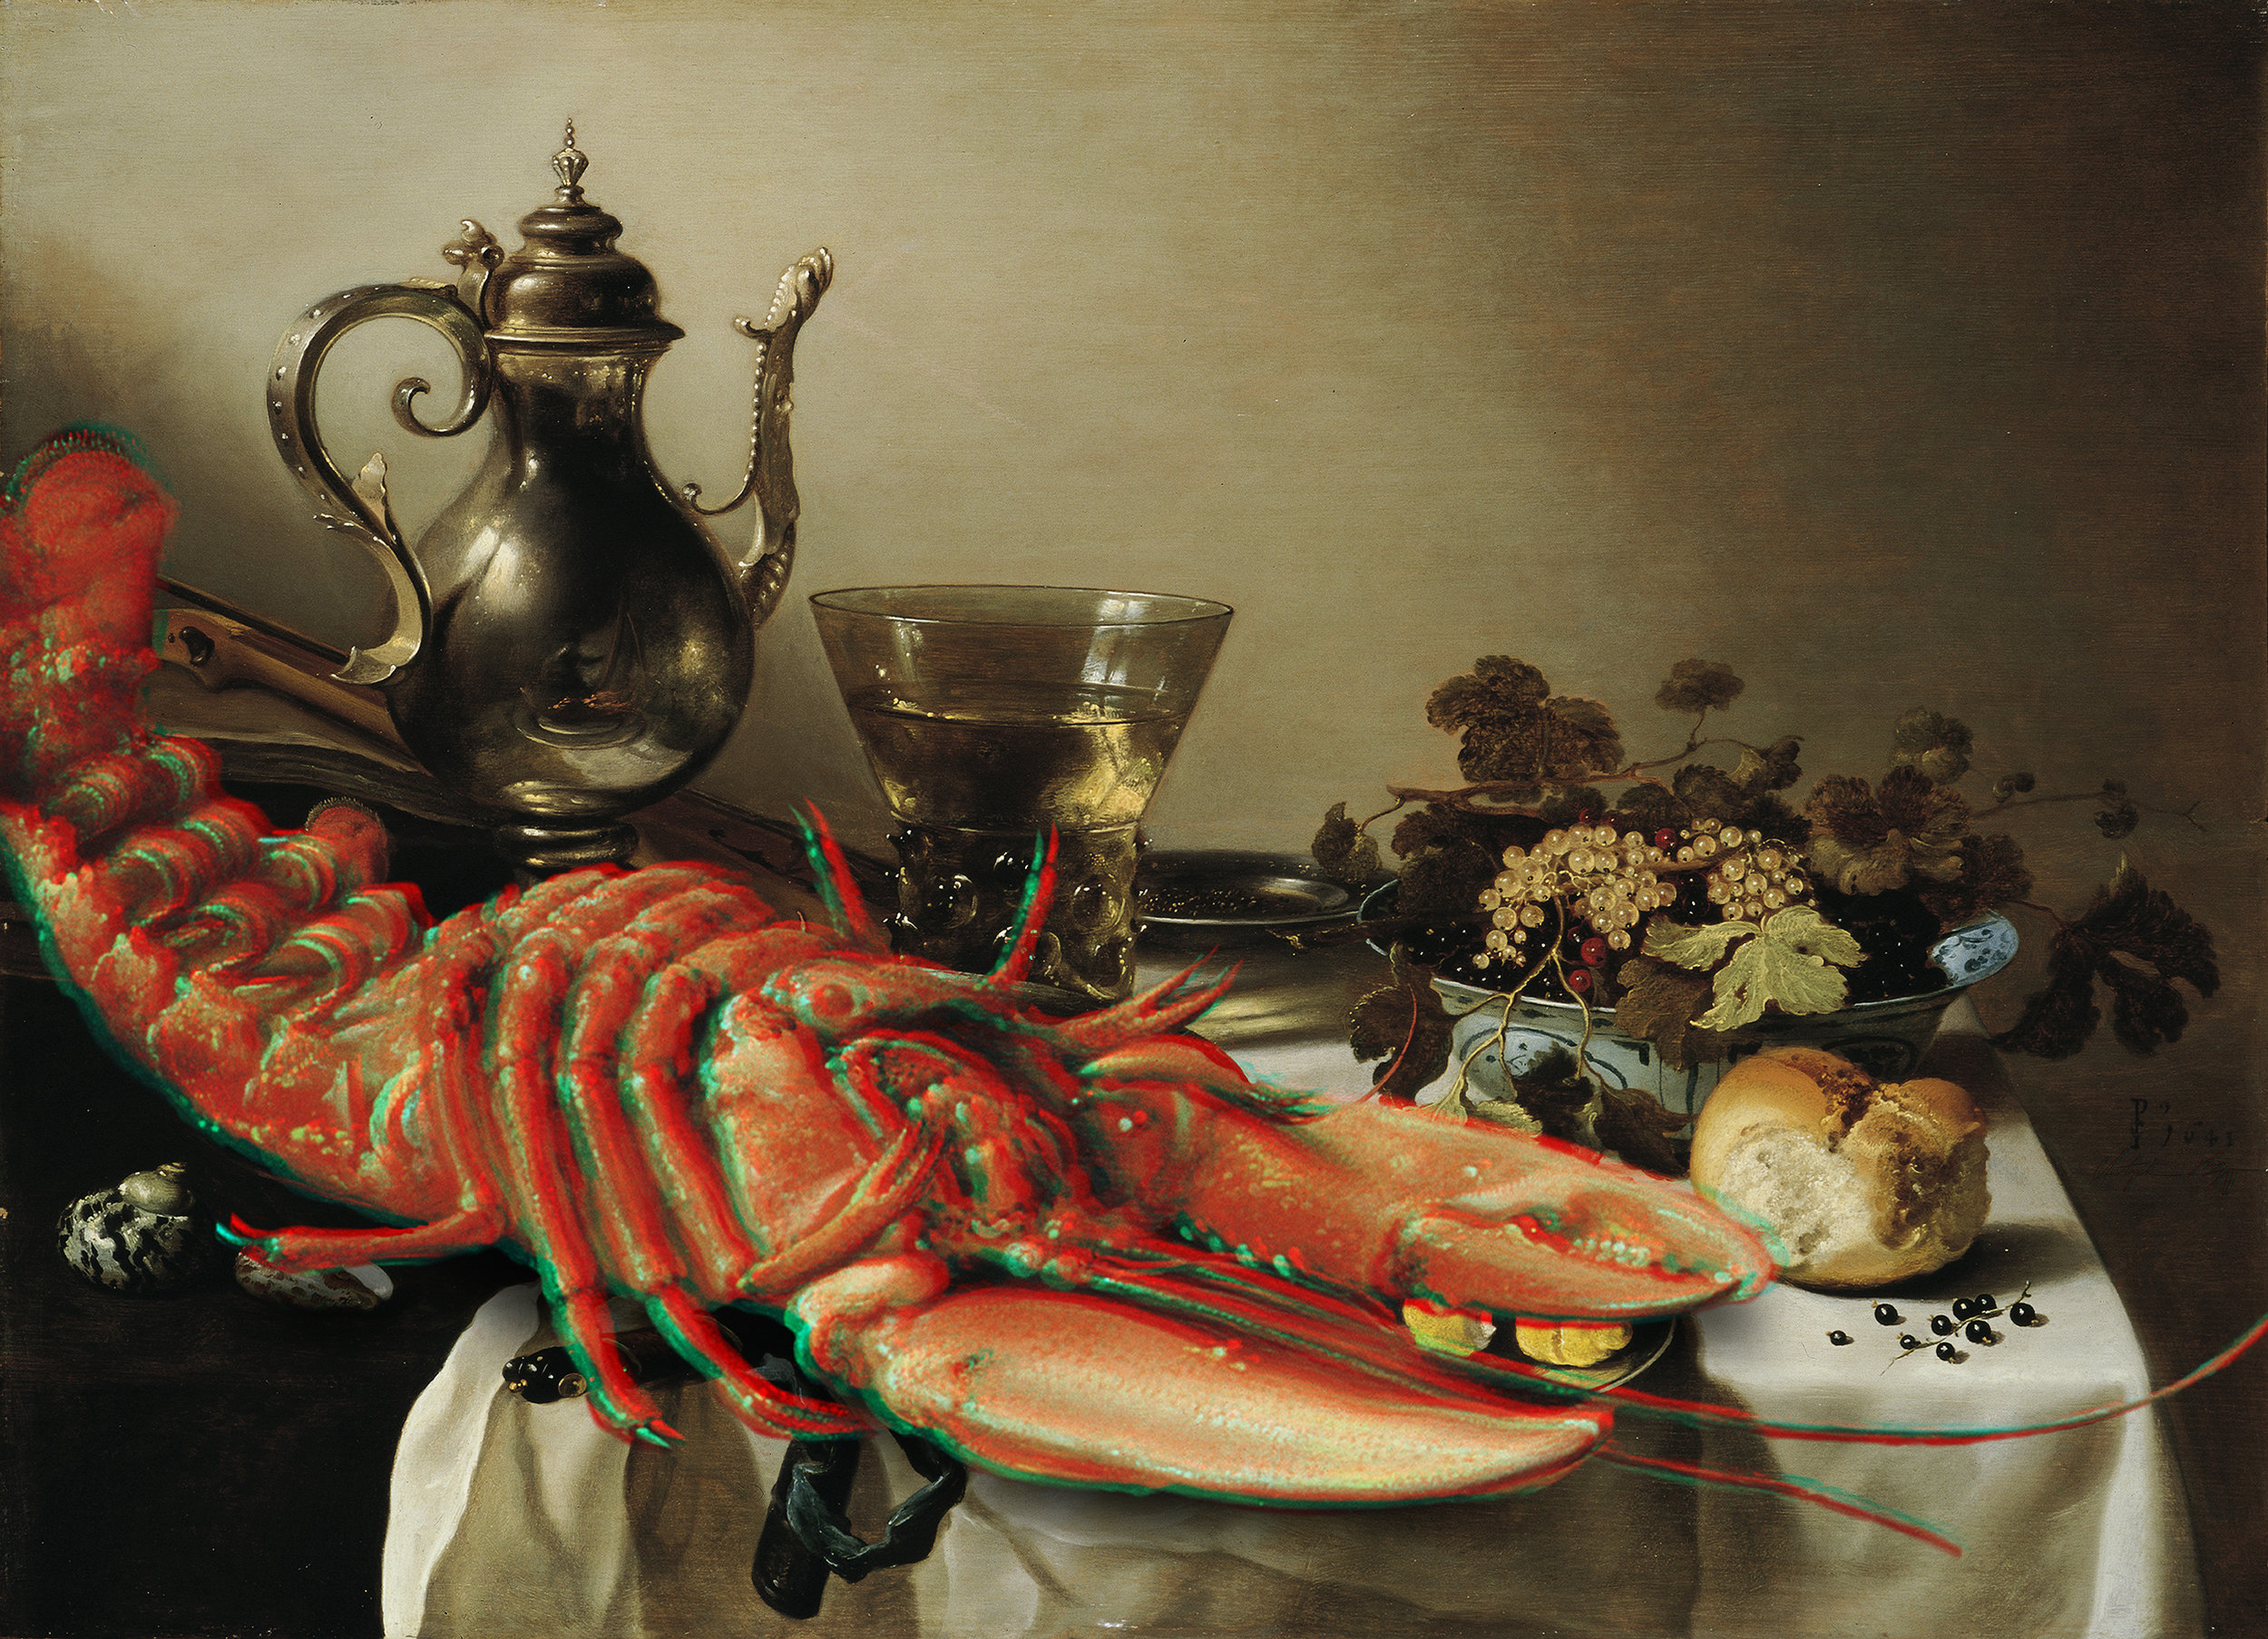 Lobster Anaglyph #4 (Table with Lobster, Silver Jug, Fruit Bowl, Violin and Books, Pieter Claesz, 1641)  2017 3D anaglyph digital UV adhesive wall fabric, 3D anaglyph glasses 25.2 × 34.84 inches